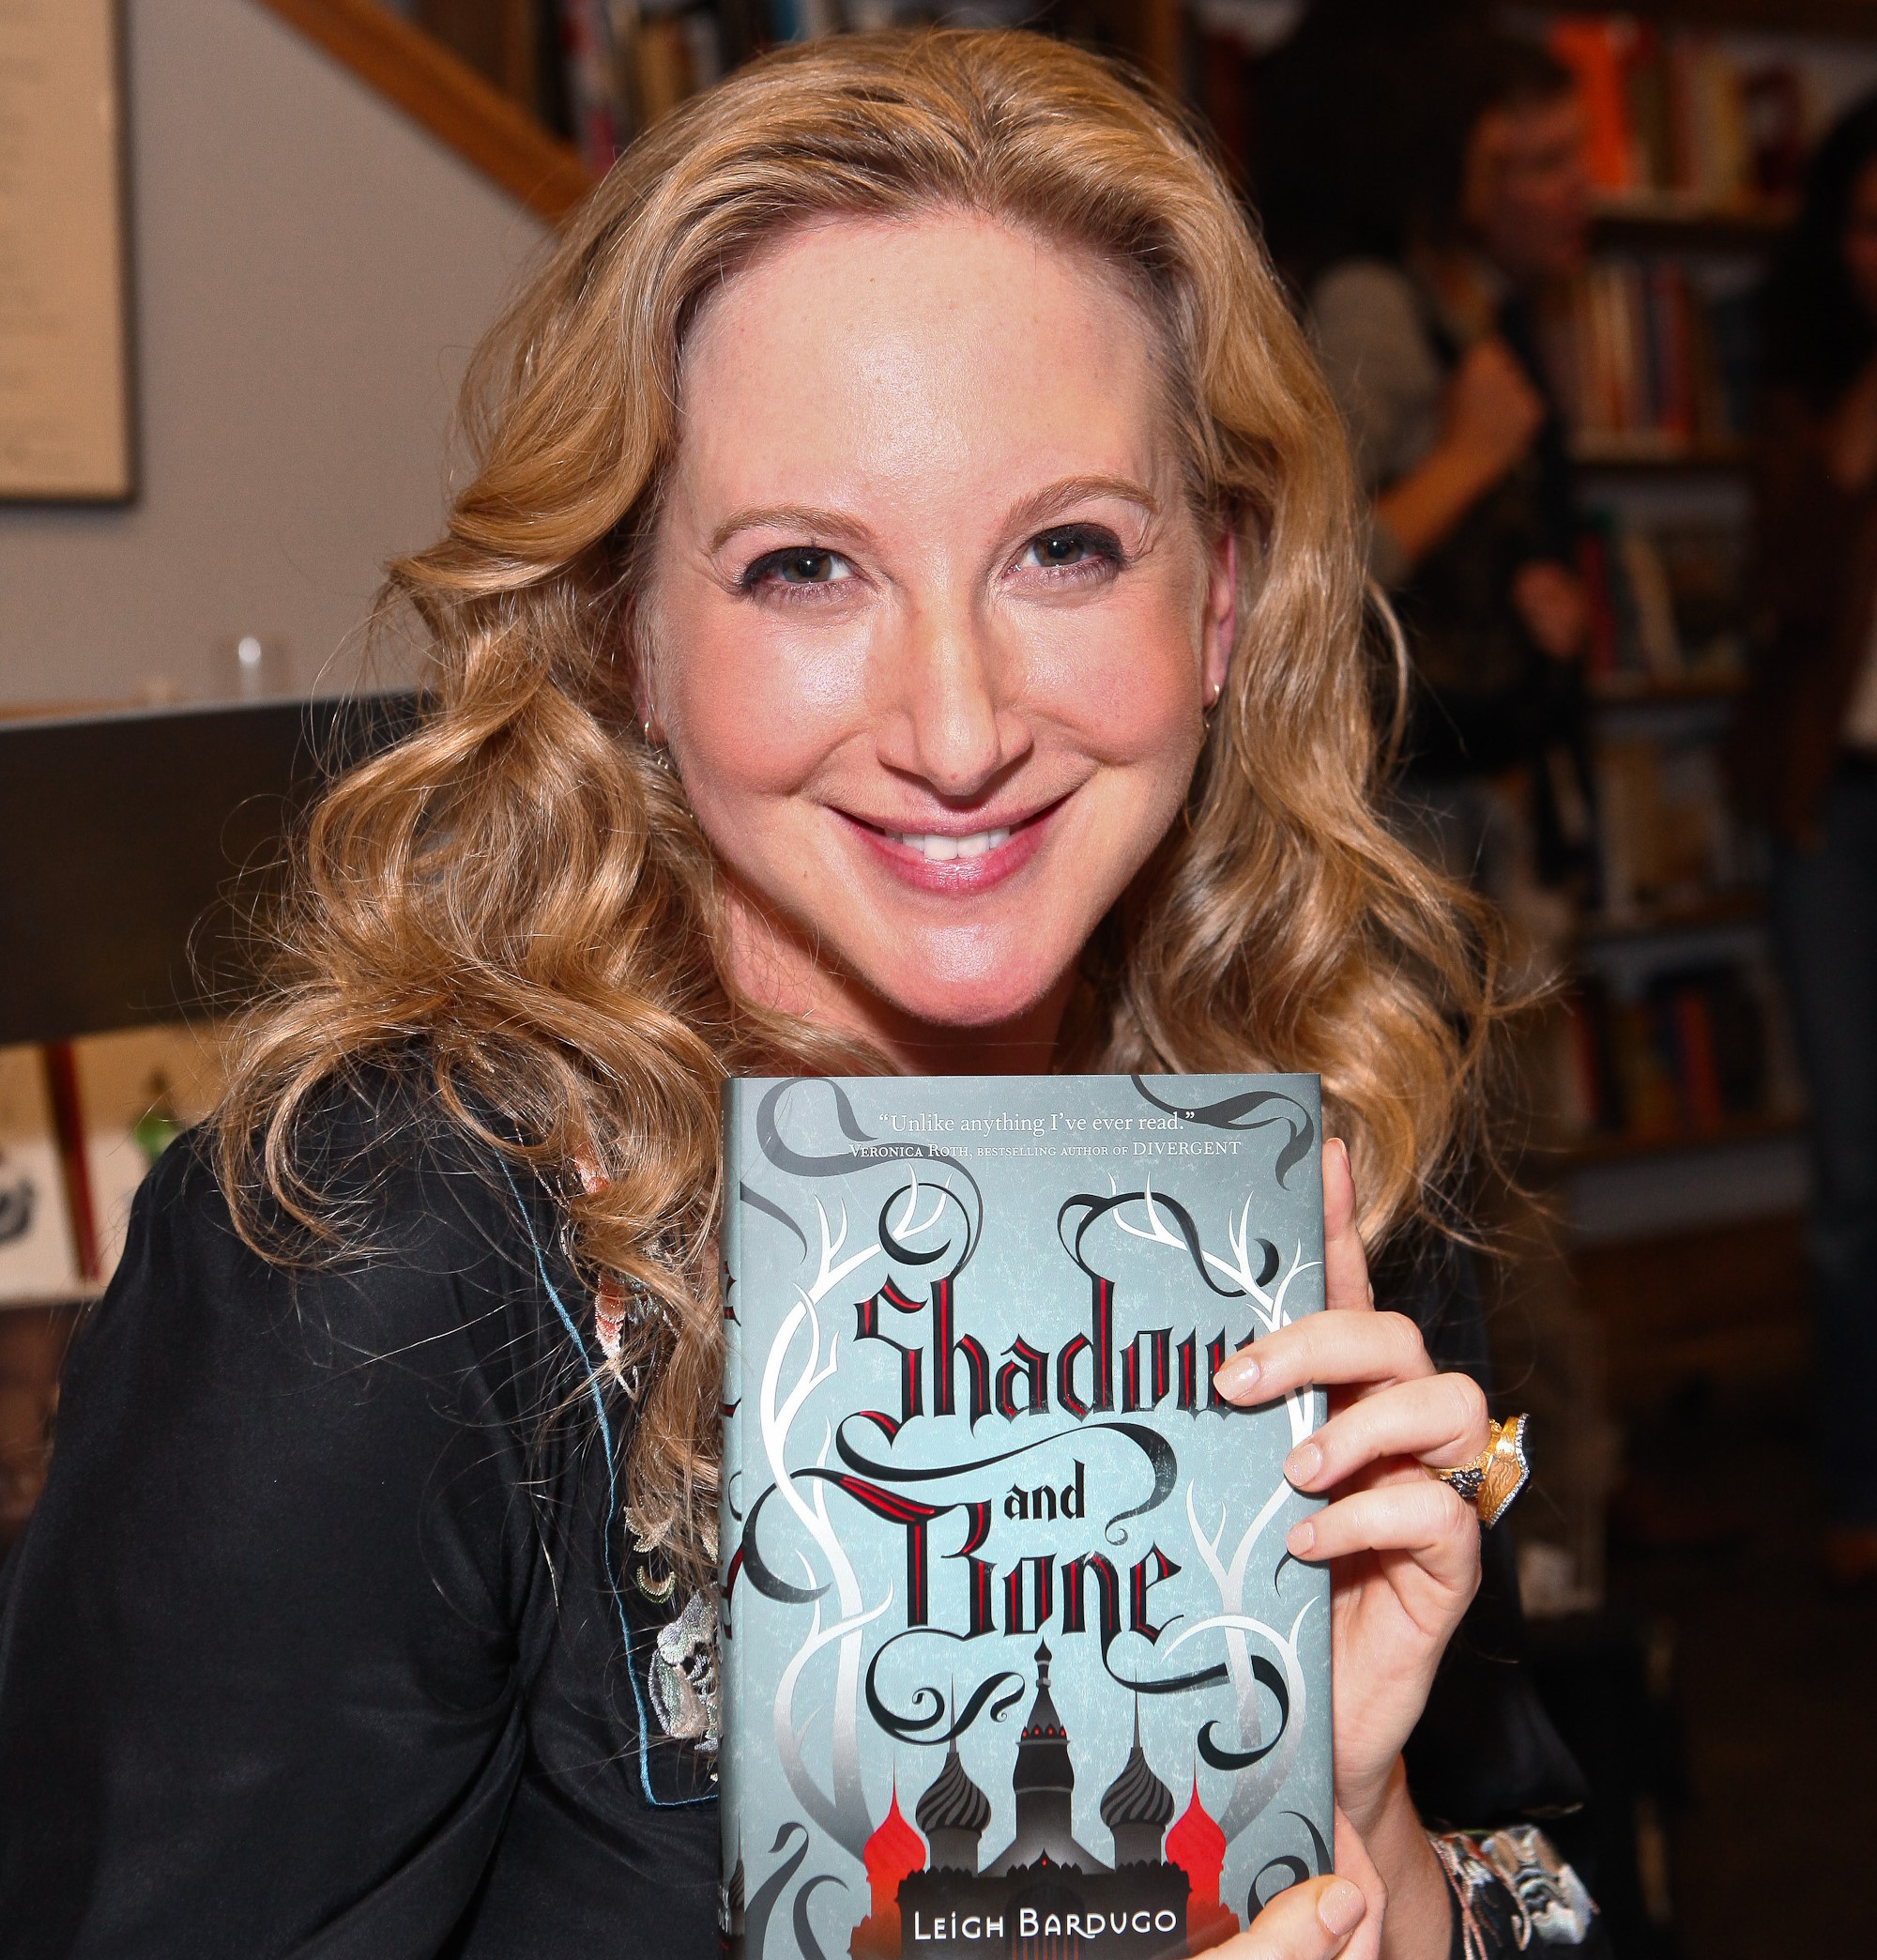 Author Leigh Bardugo signs copies of her debut novel 'Shadow And Bone'